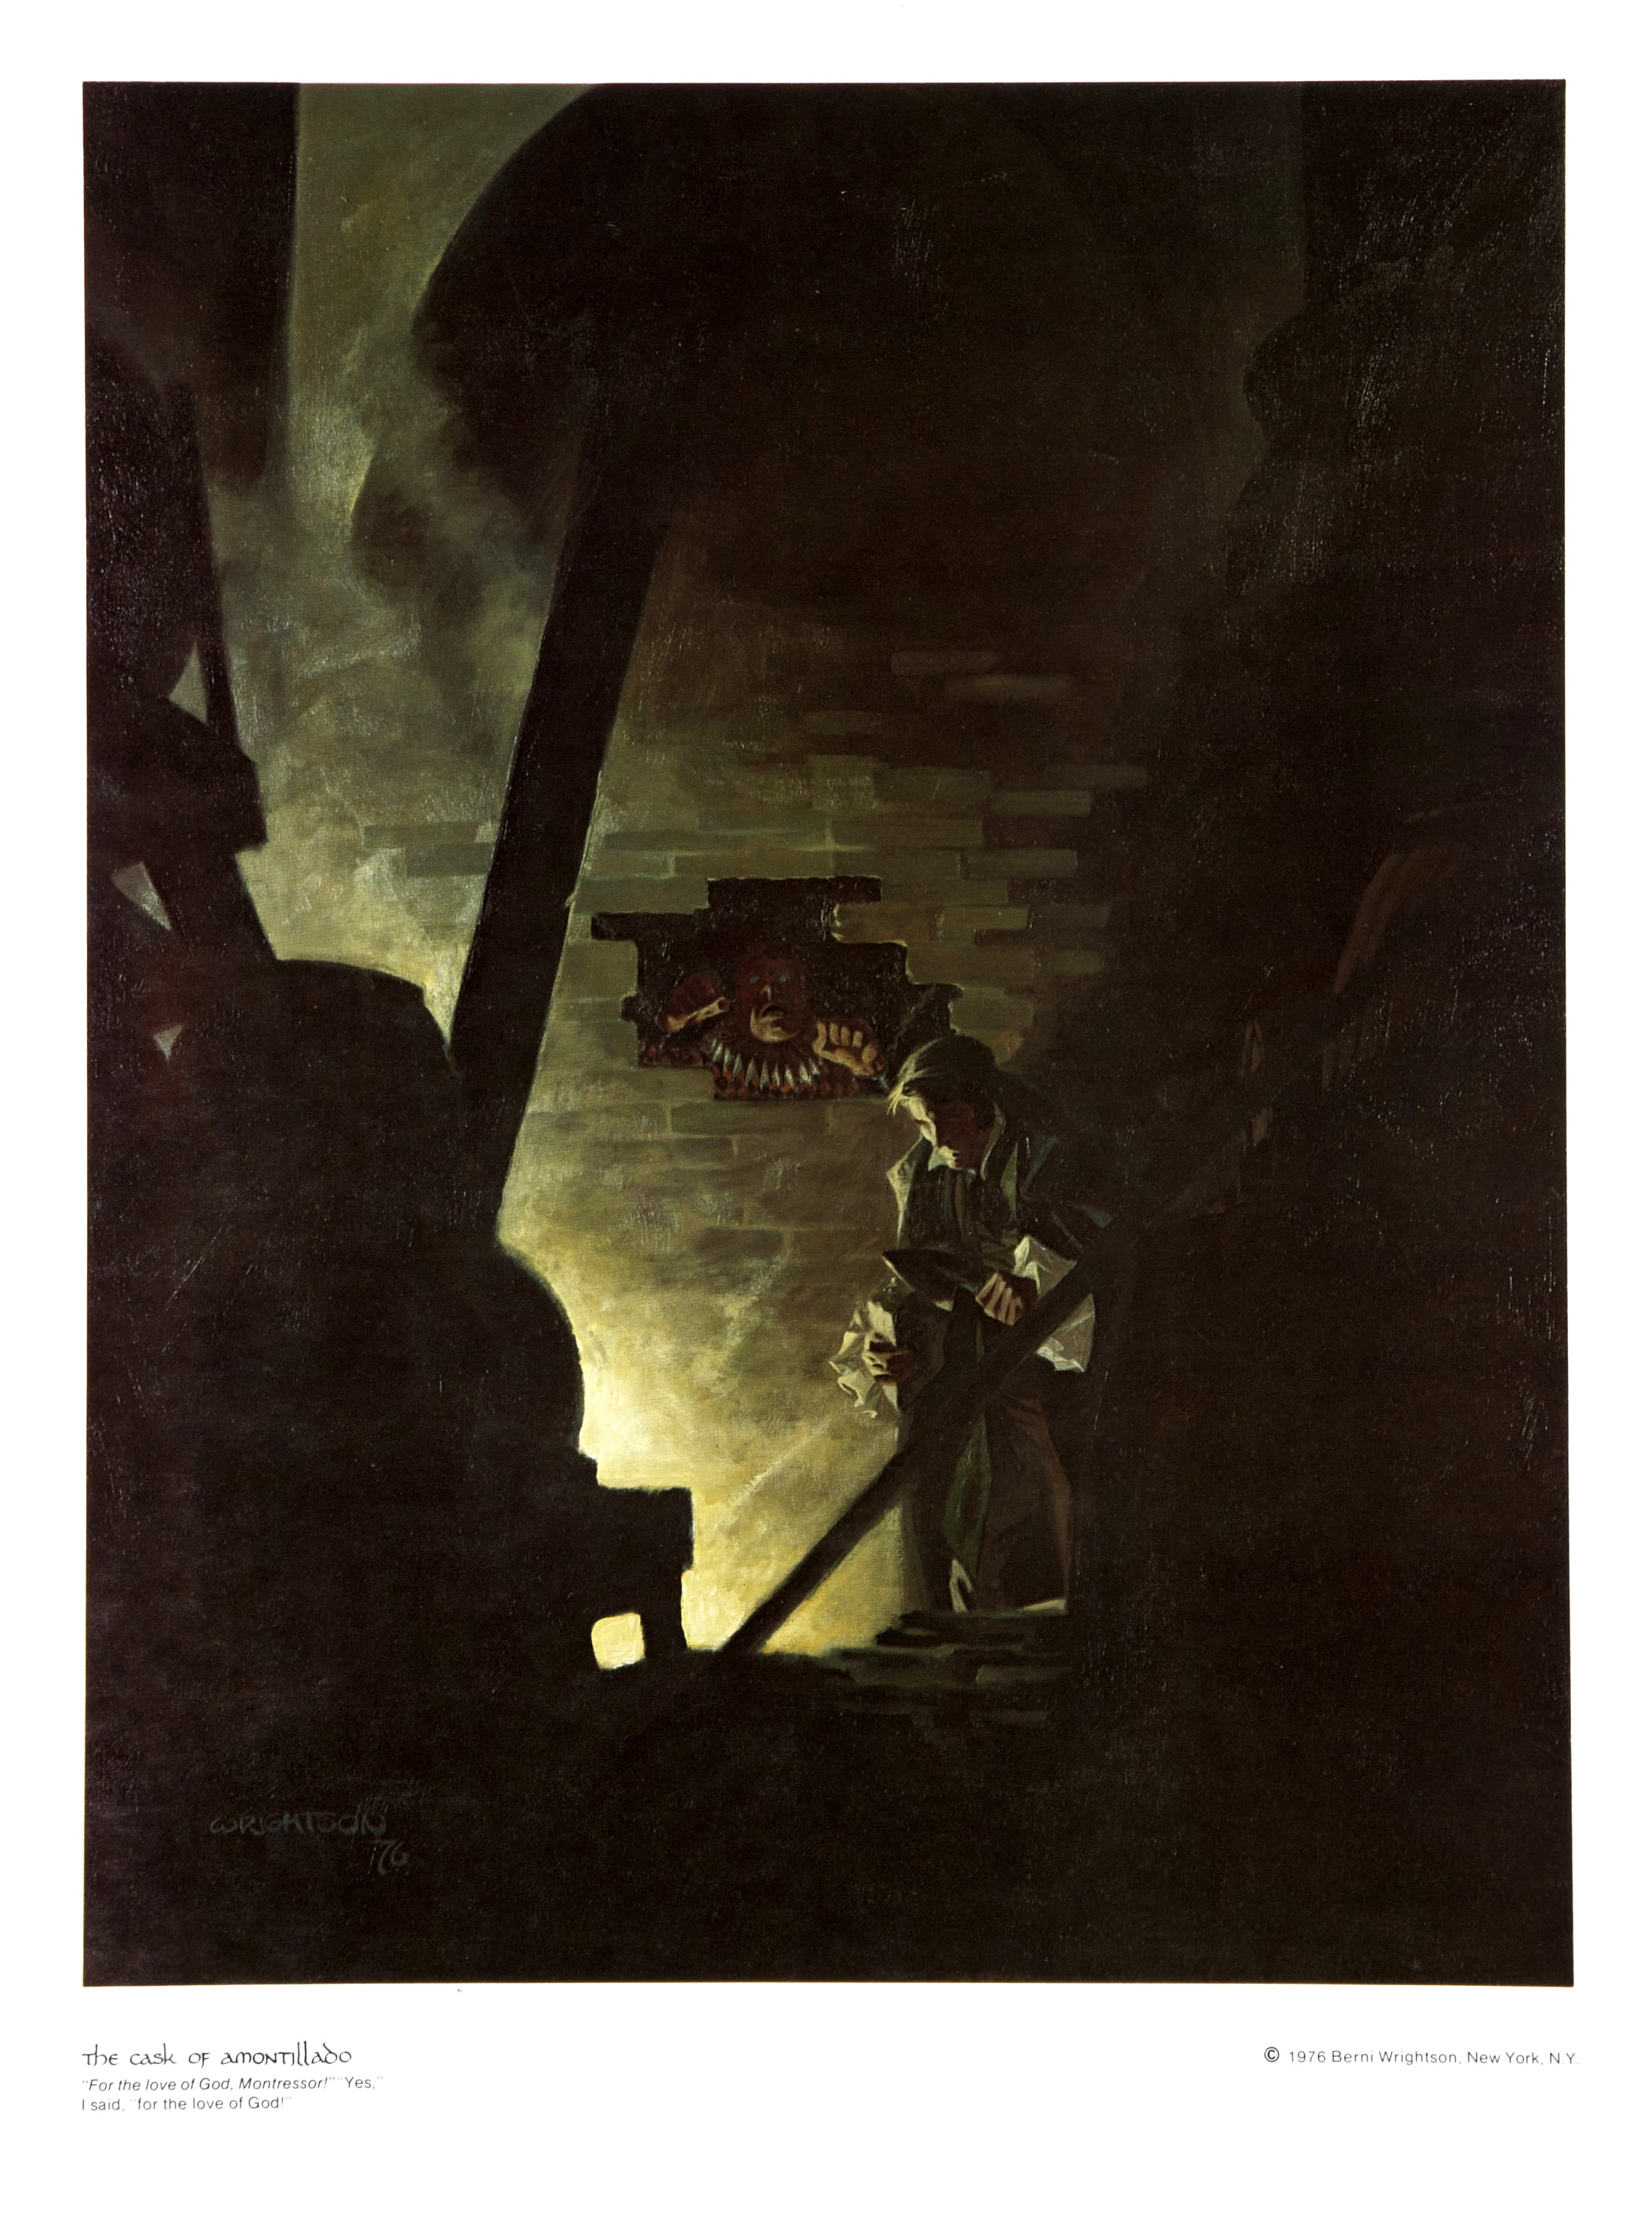 The motif of duplicity in the cask of amontillado a short story by edgar allan poe